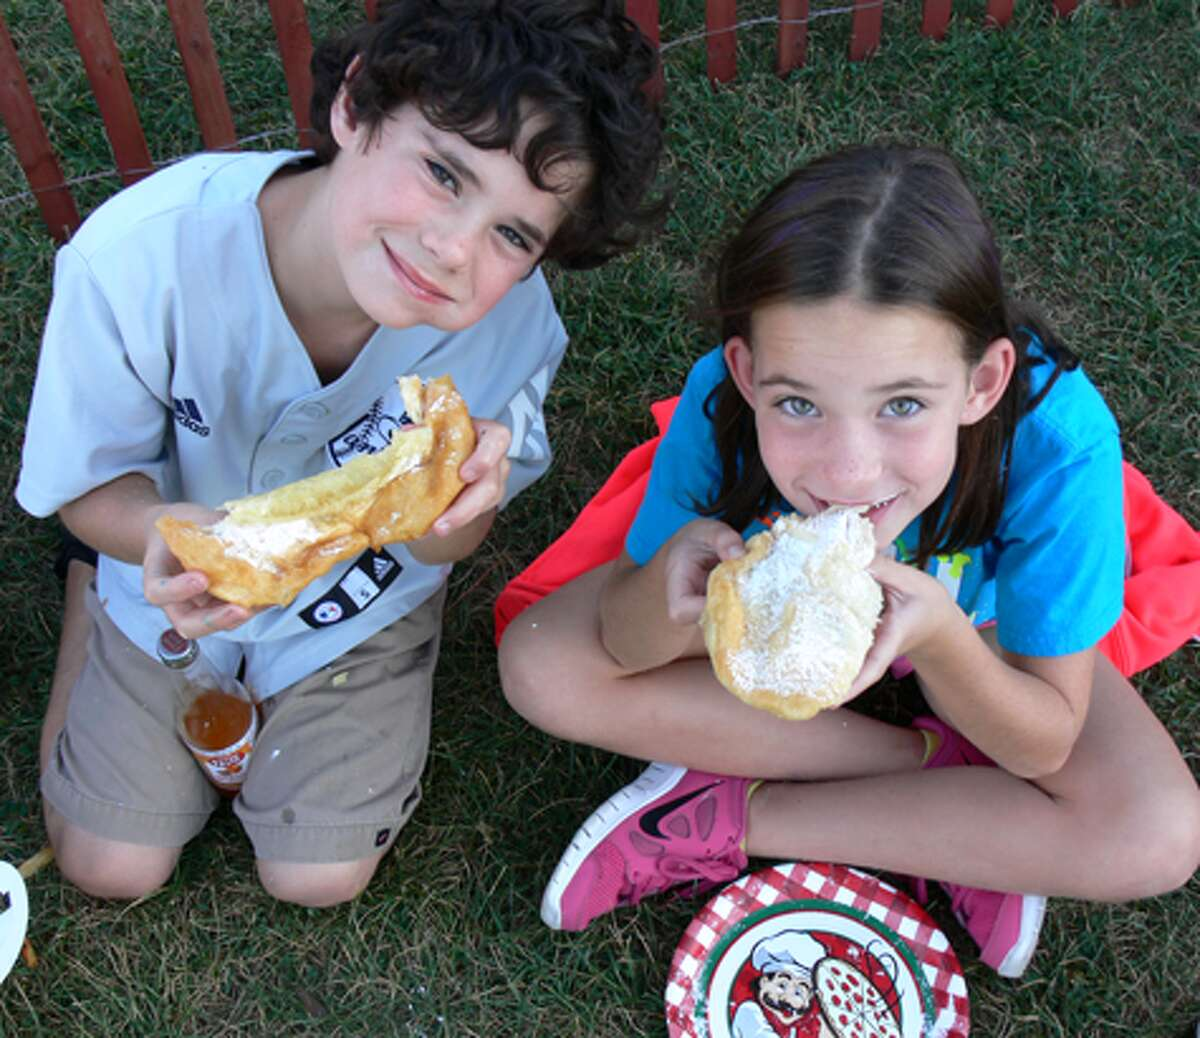 Mac and Ireland Starziski, 10-year-old twins from Naugatuck, are all smiles as they devour fried pizza dough. They were with siblings Skyla, 10, and Ty, 6, as well as mom Amy.